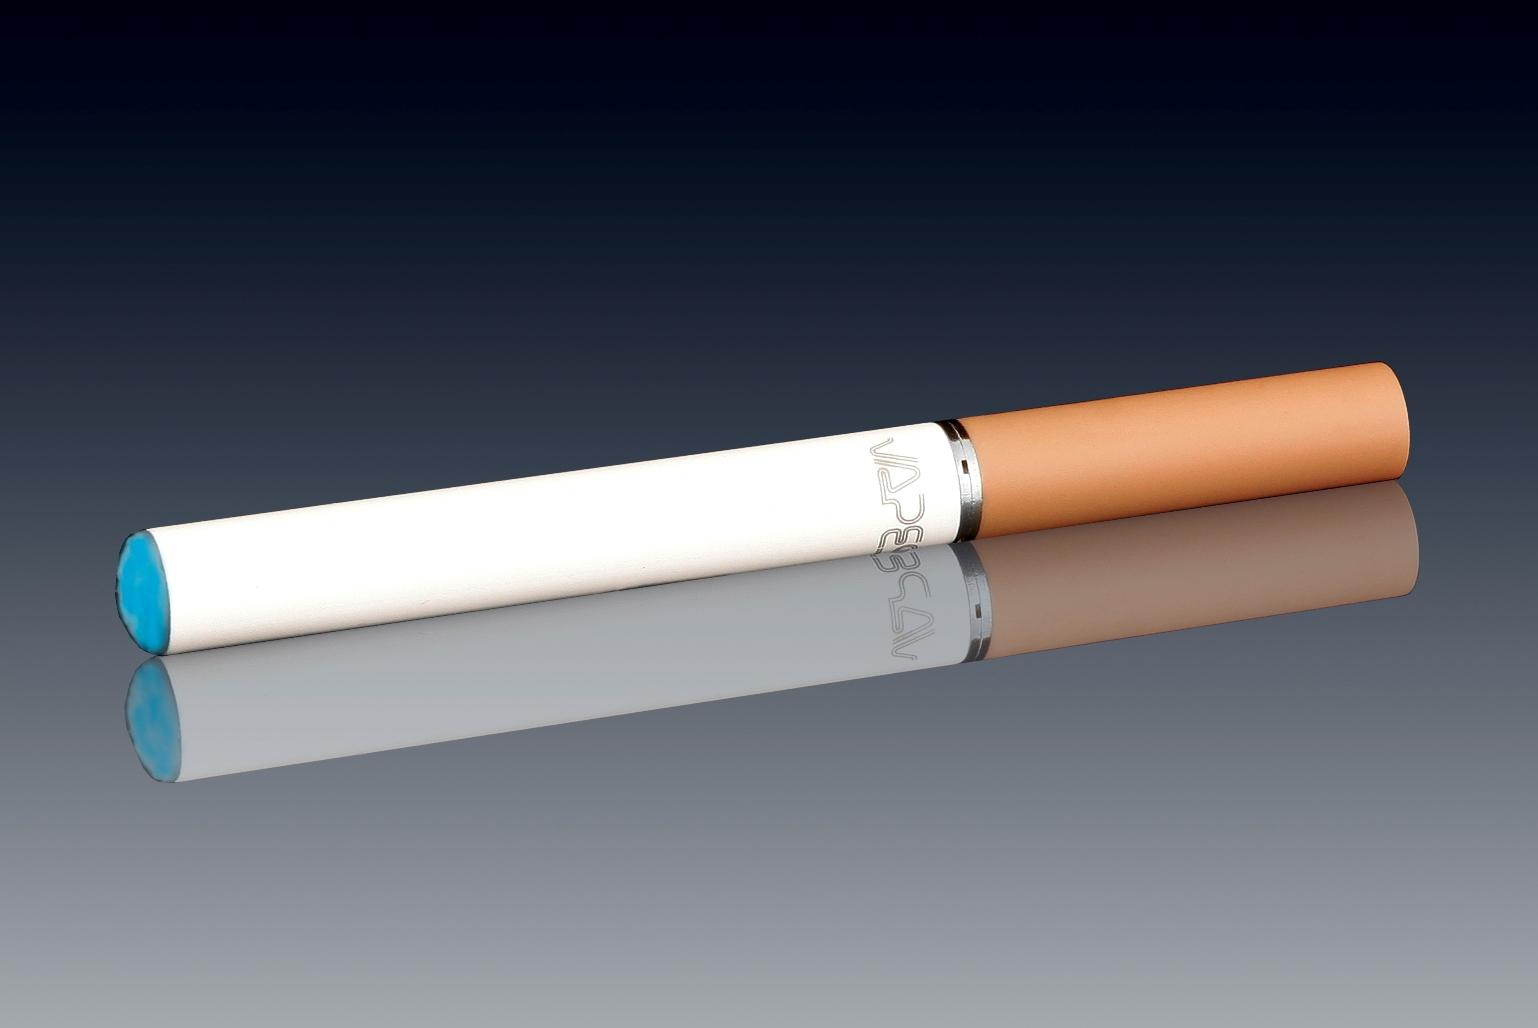 Electronic cigarette rating